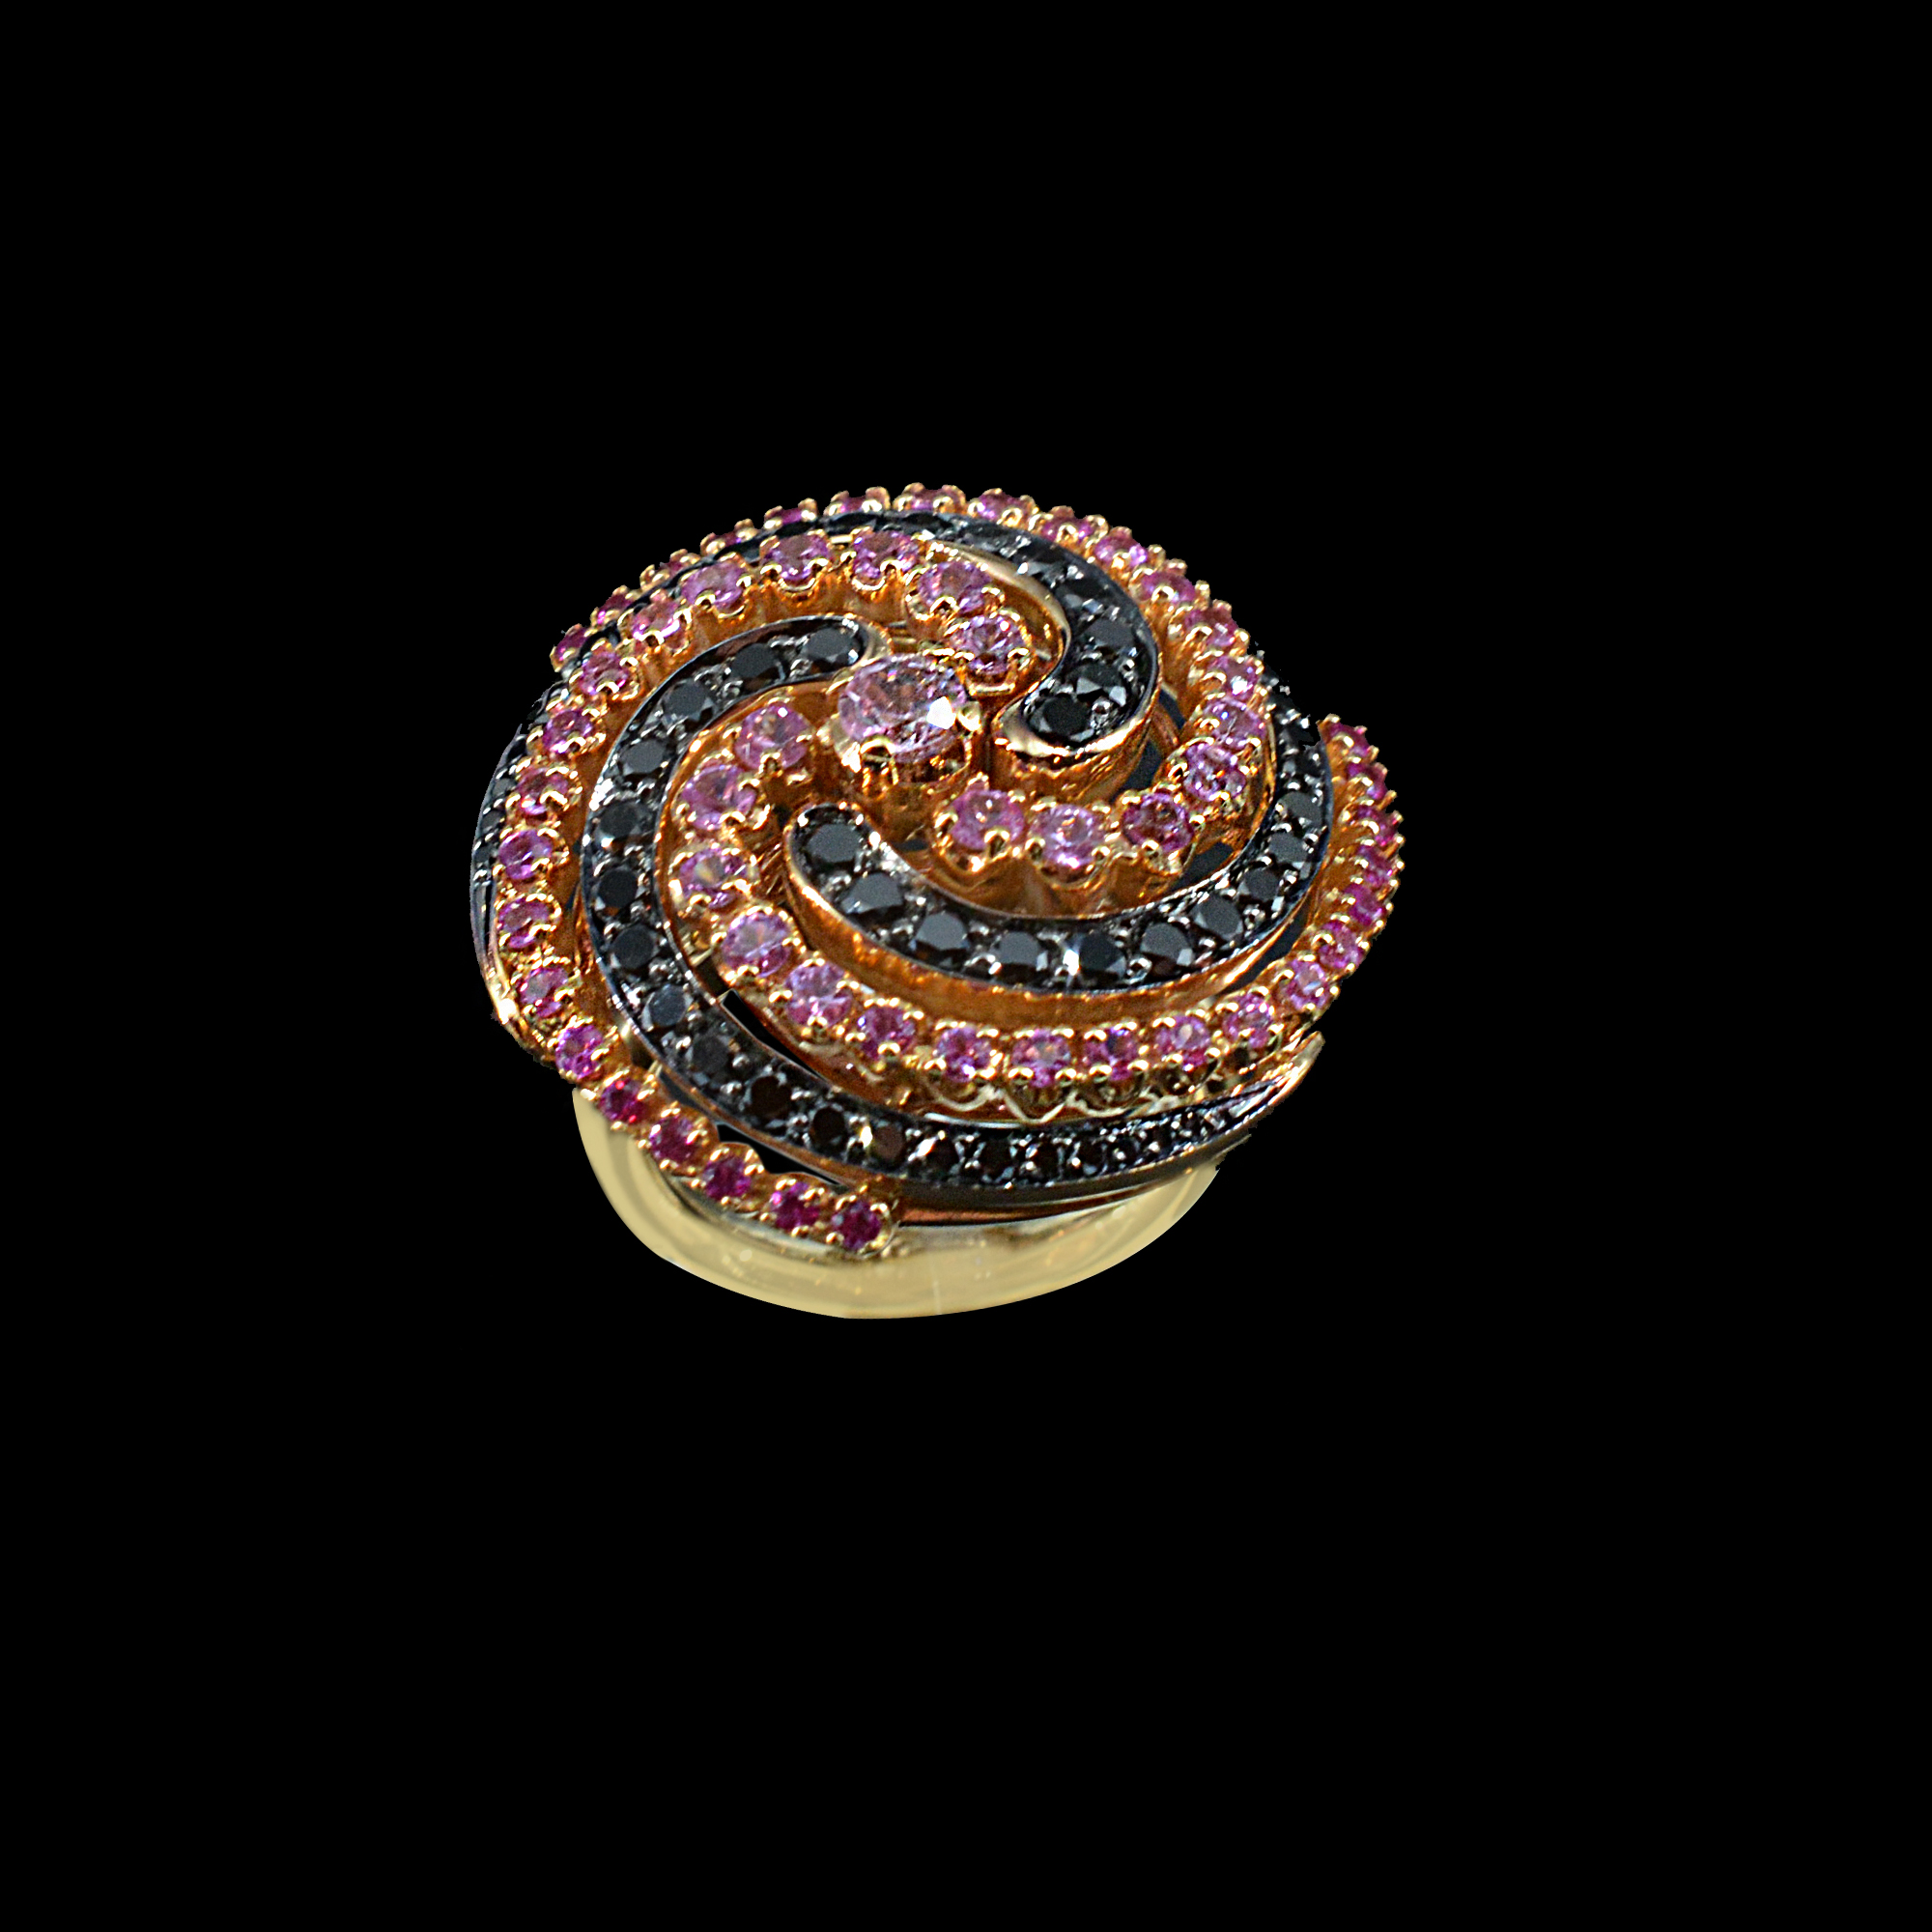 Pink Sapphires and Black Diamonds ring d8ad6a066b8